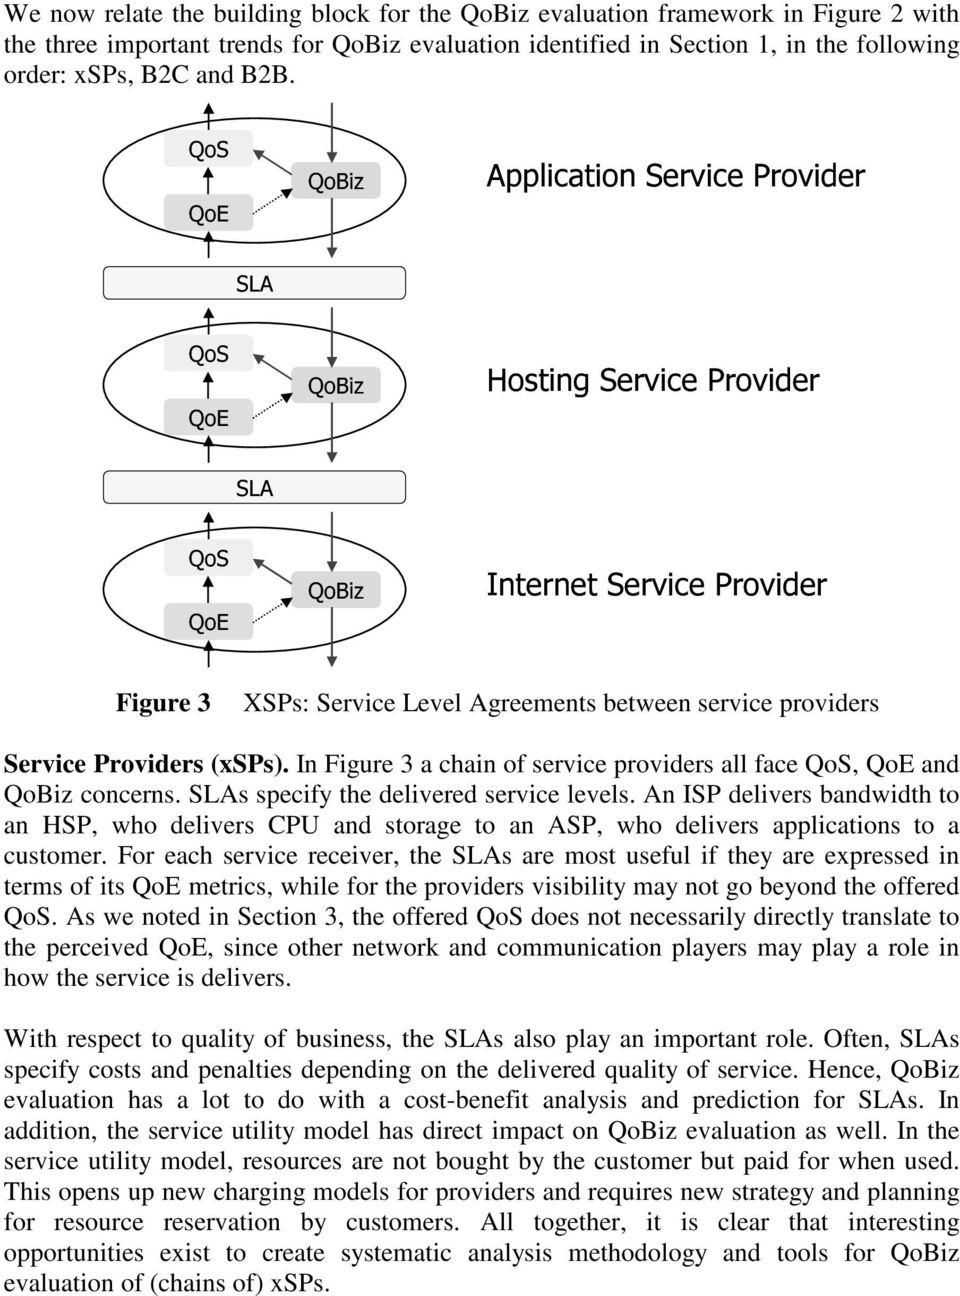 "z >³ H -ª«z / >ª5 4«z > ª œ : : Dš µ 9 0 -ª( H H ""ª«z / >ª5 4«z > ª Figure 3 XSPs: Service Level Agreements between service providers Service Providers (xsps)."